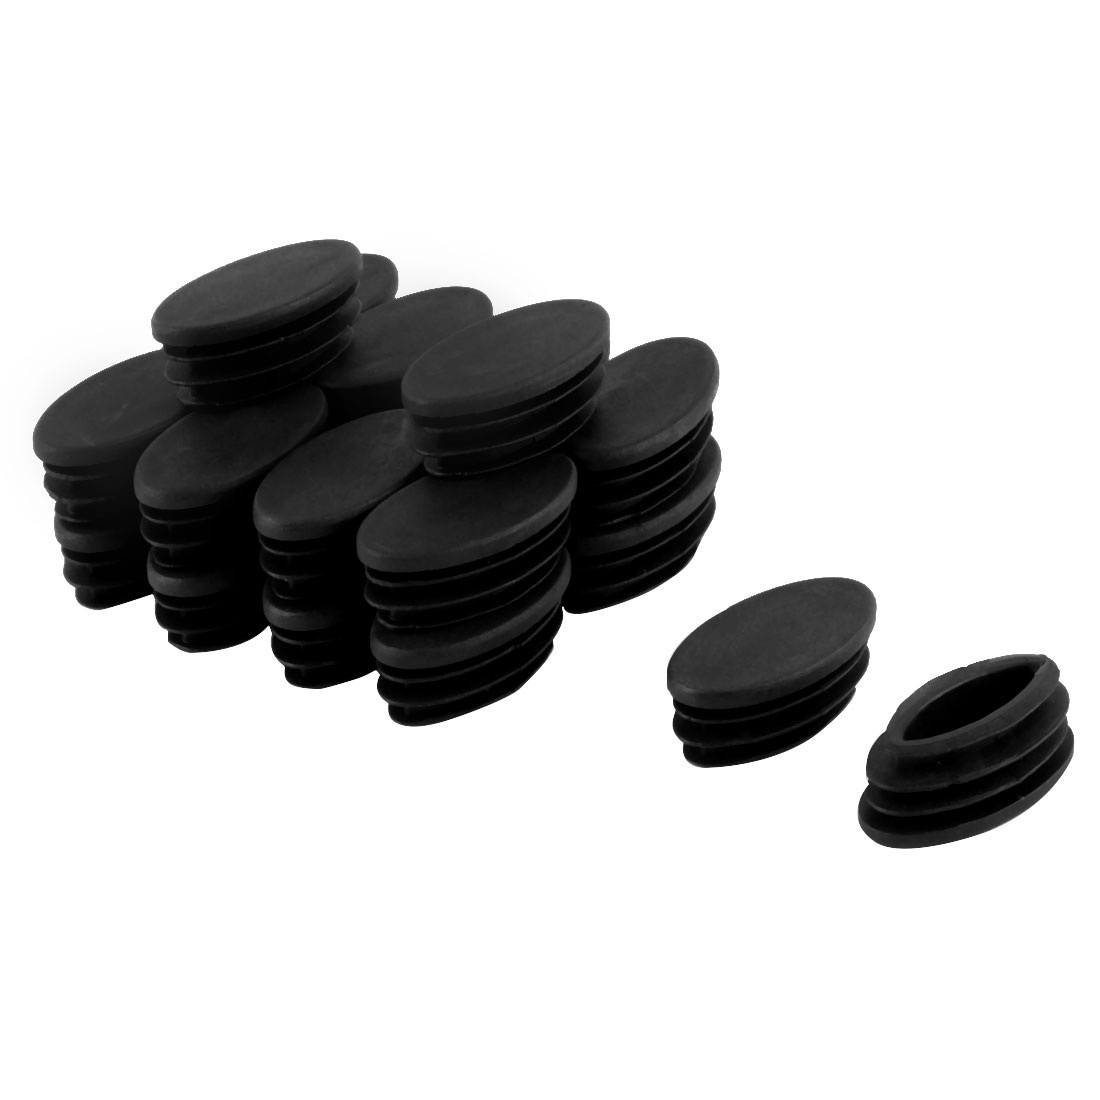 Table Chair Leg Feet Plastic Oval Pipe Tube Insert Black 20 x 40mm 20 Pcs